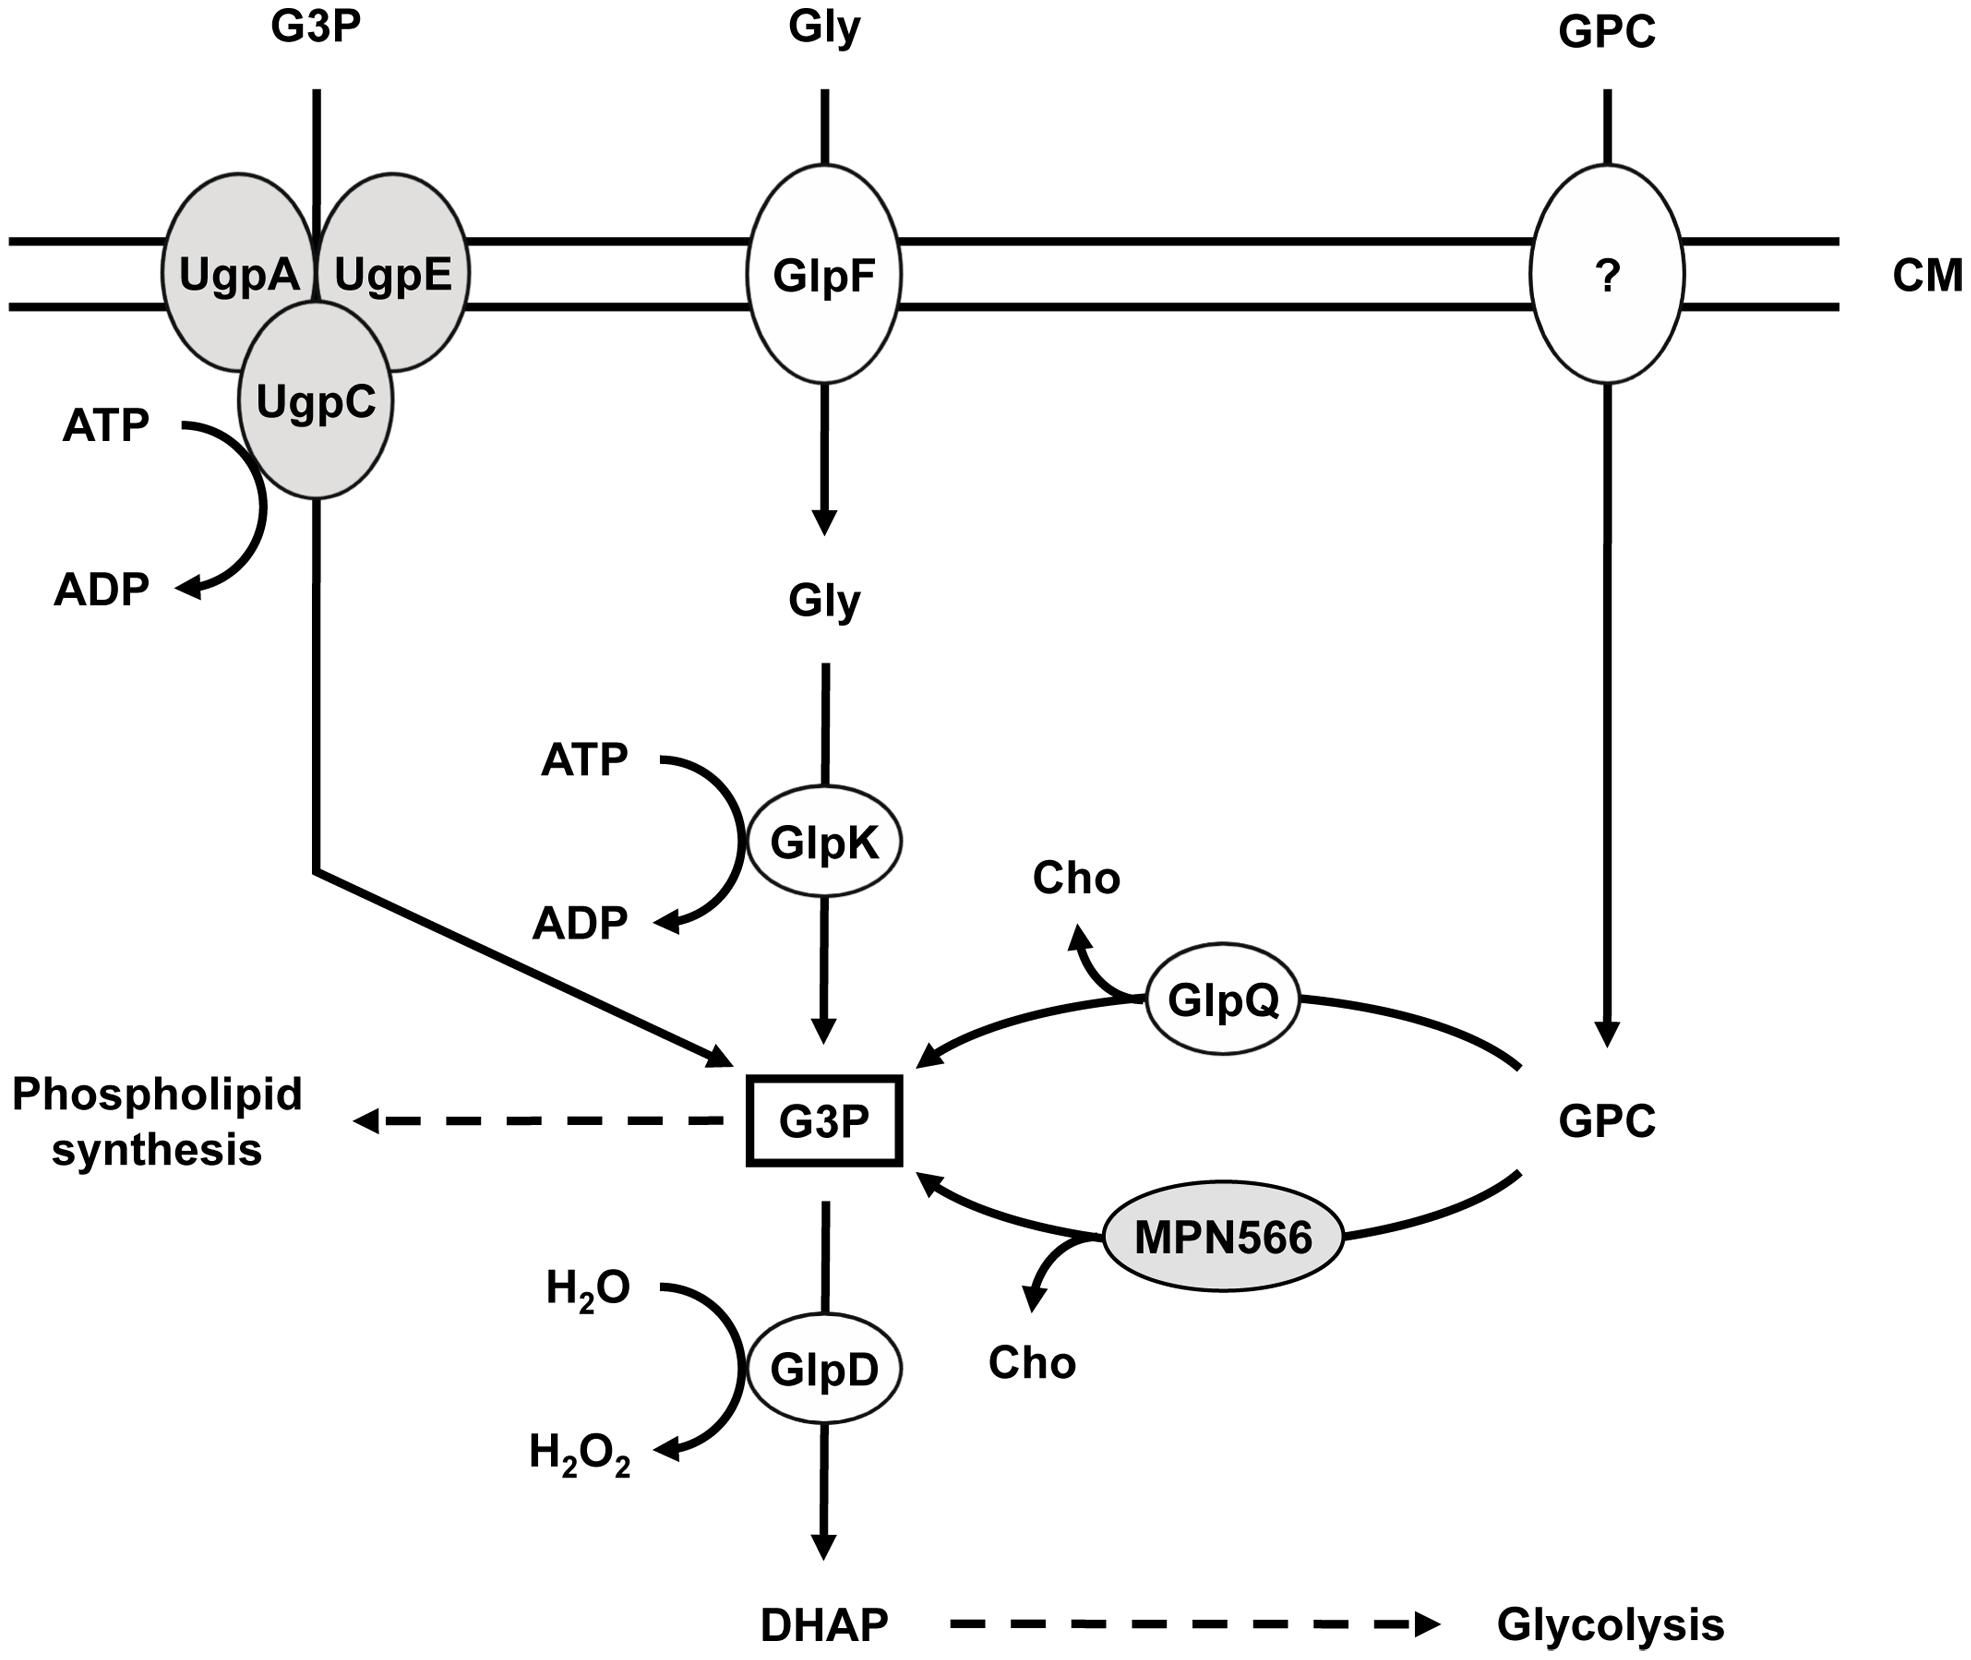 Schematic illustration of the machinery for uptake and conversion of carbohydrates leading to the formation of glycerol-3-phosphate in <i>M. pneumoniae</i>.